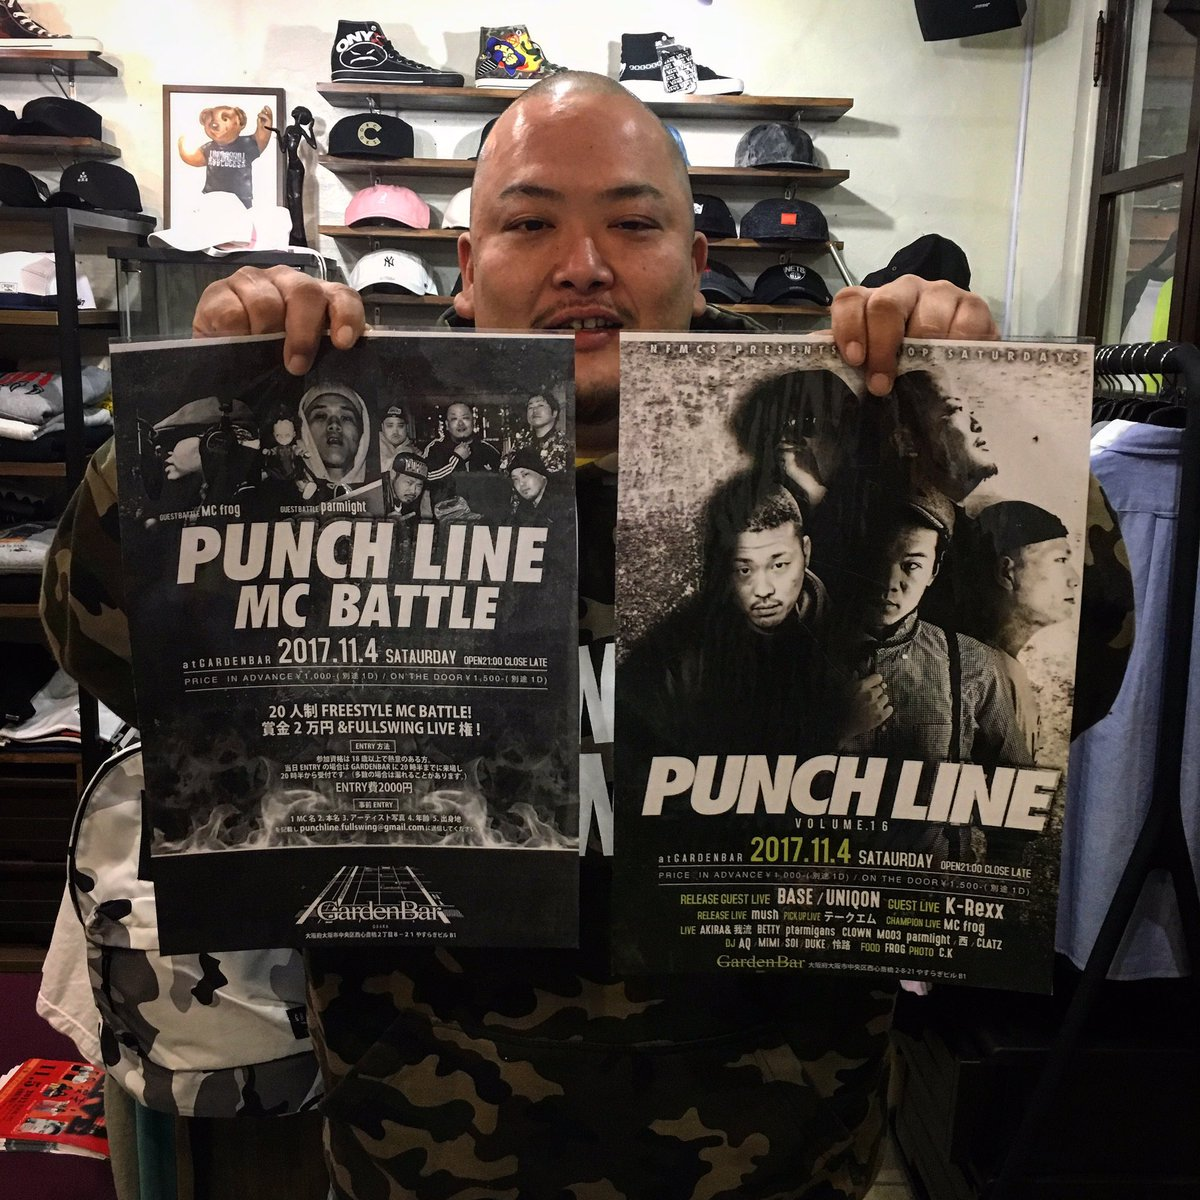 11/4(sat)PUNCH LINE at GARDENN BARFREESTYLE BATTLEも開催されているイベ